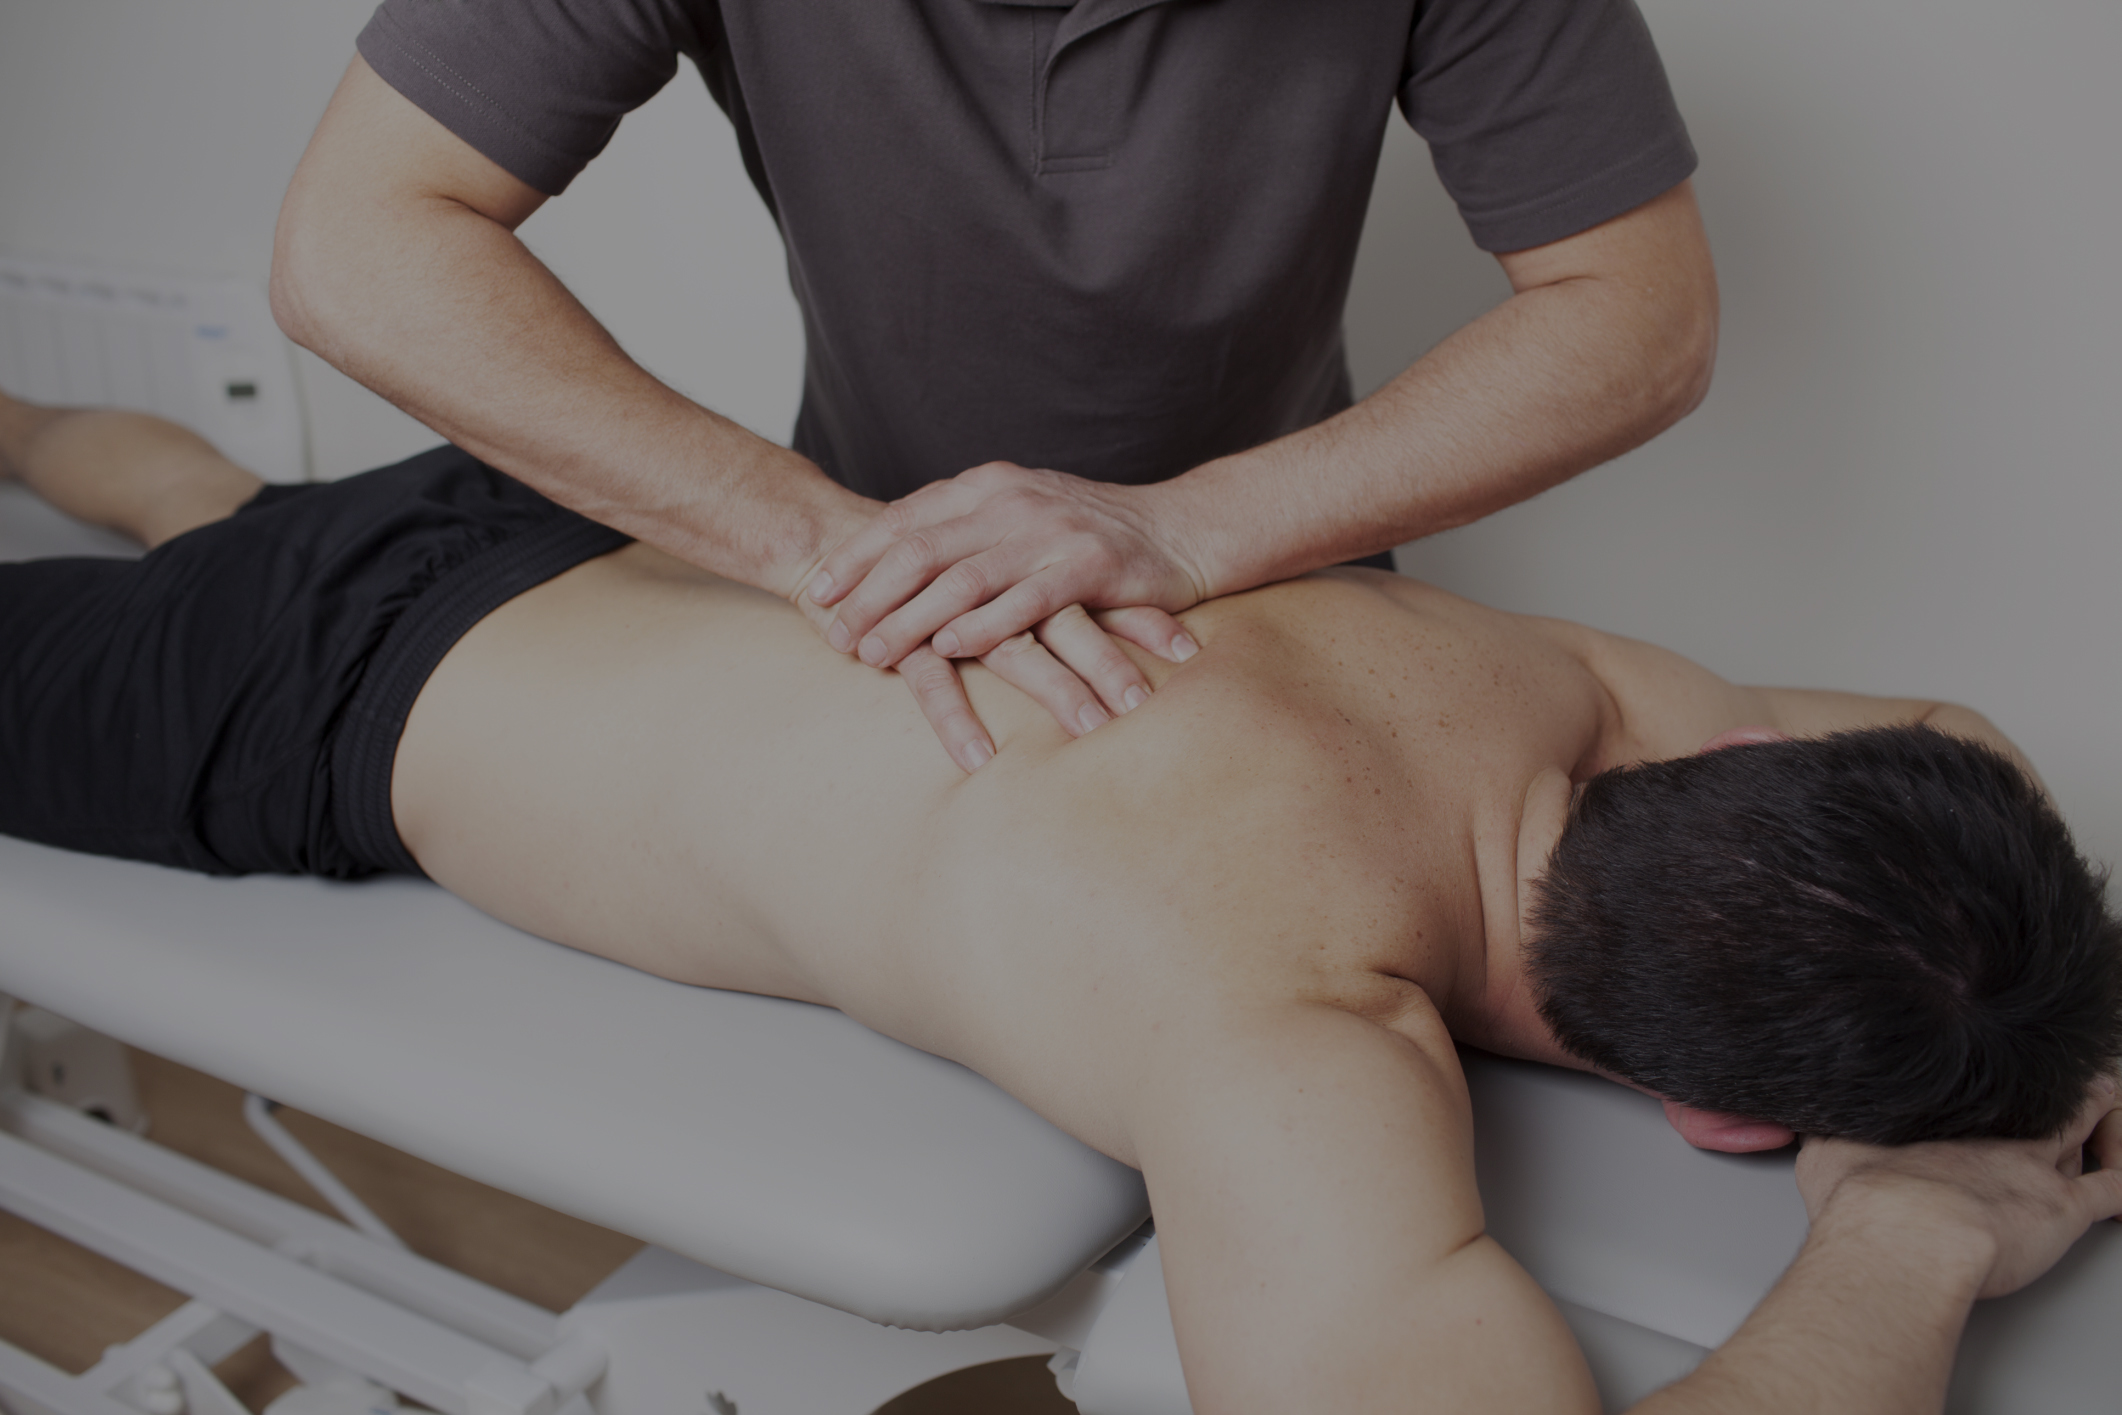 Health: The Chiropractic Meaning of Life